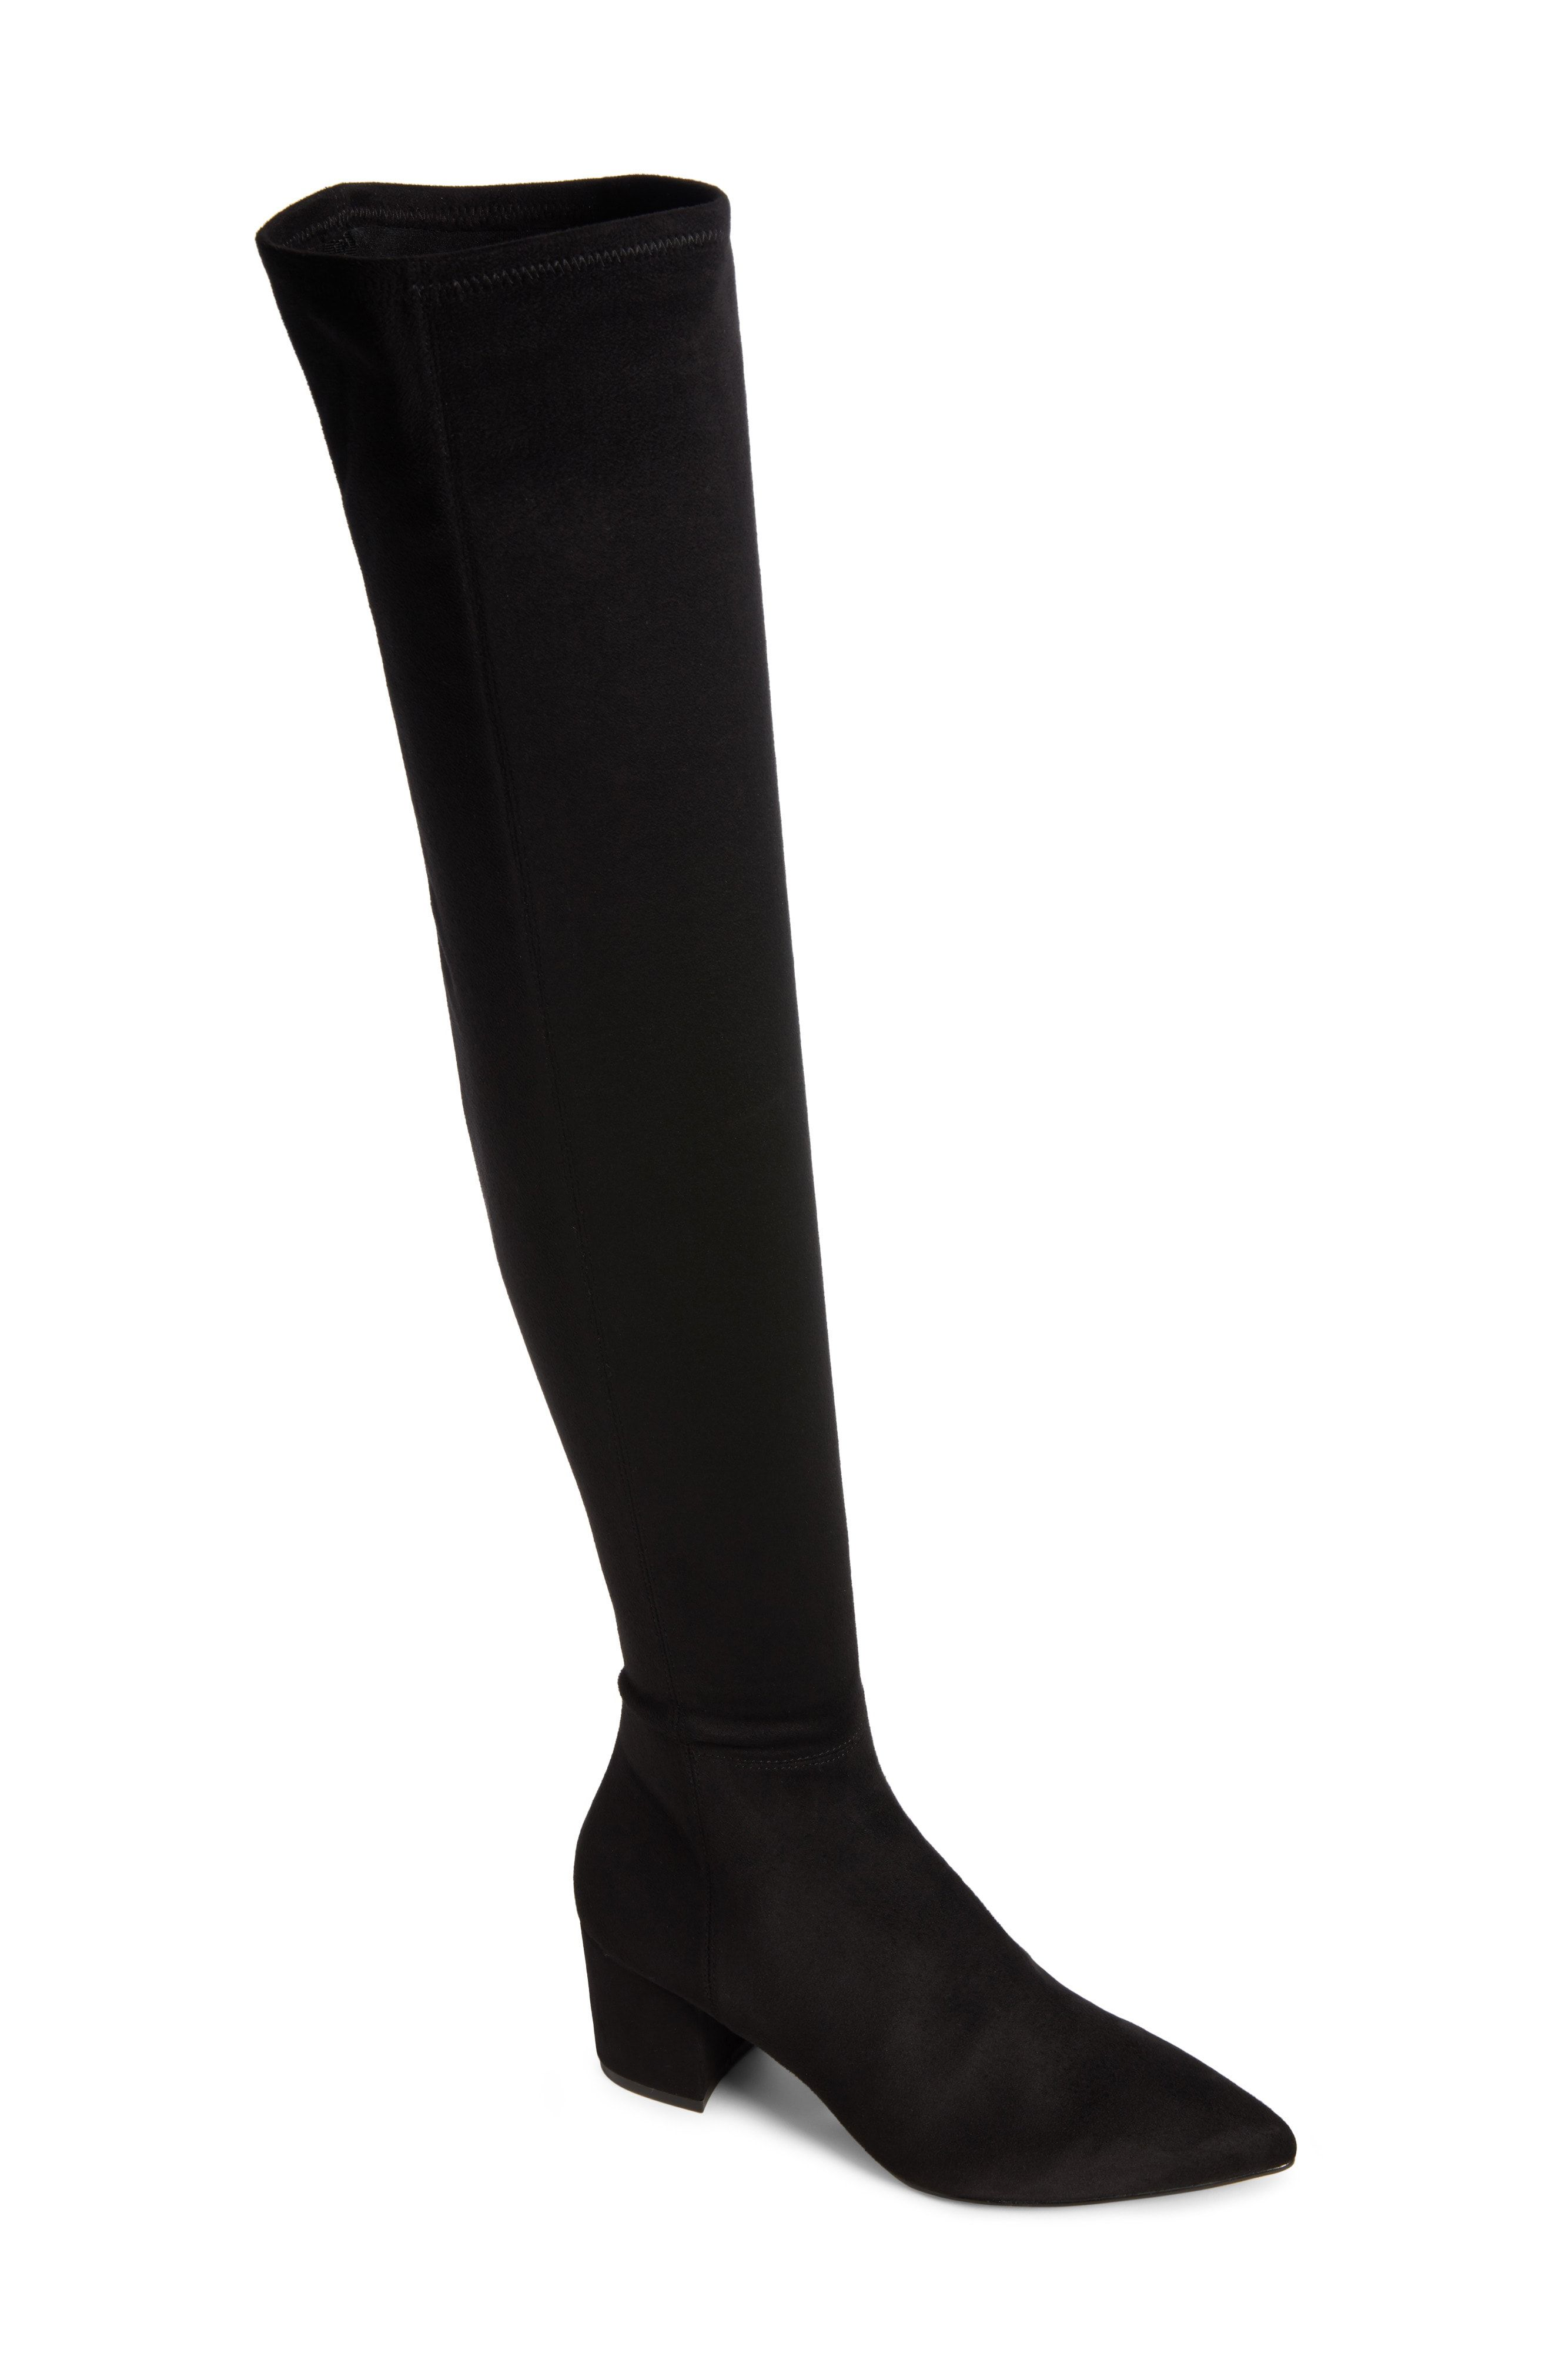 0a21805816f Steve Madden Brinkley Over the Knee Stretch Boot available at  Nordstrom  Love these! Want these!